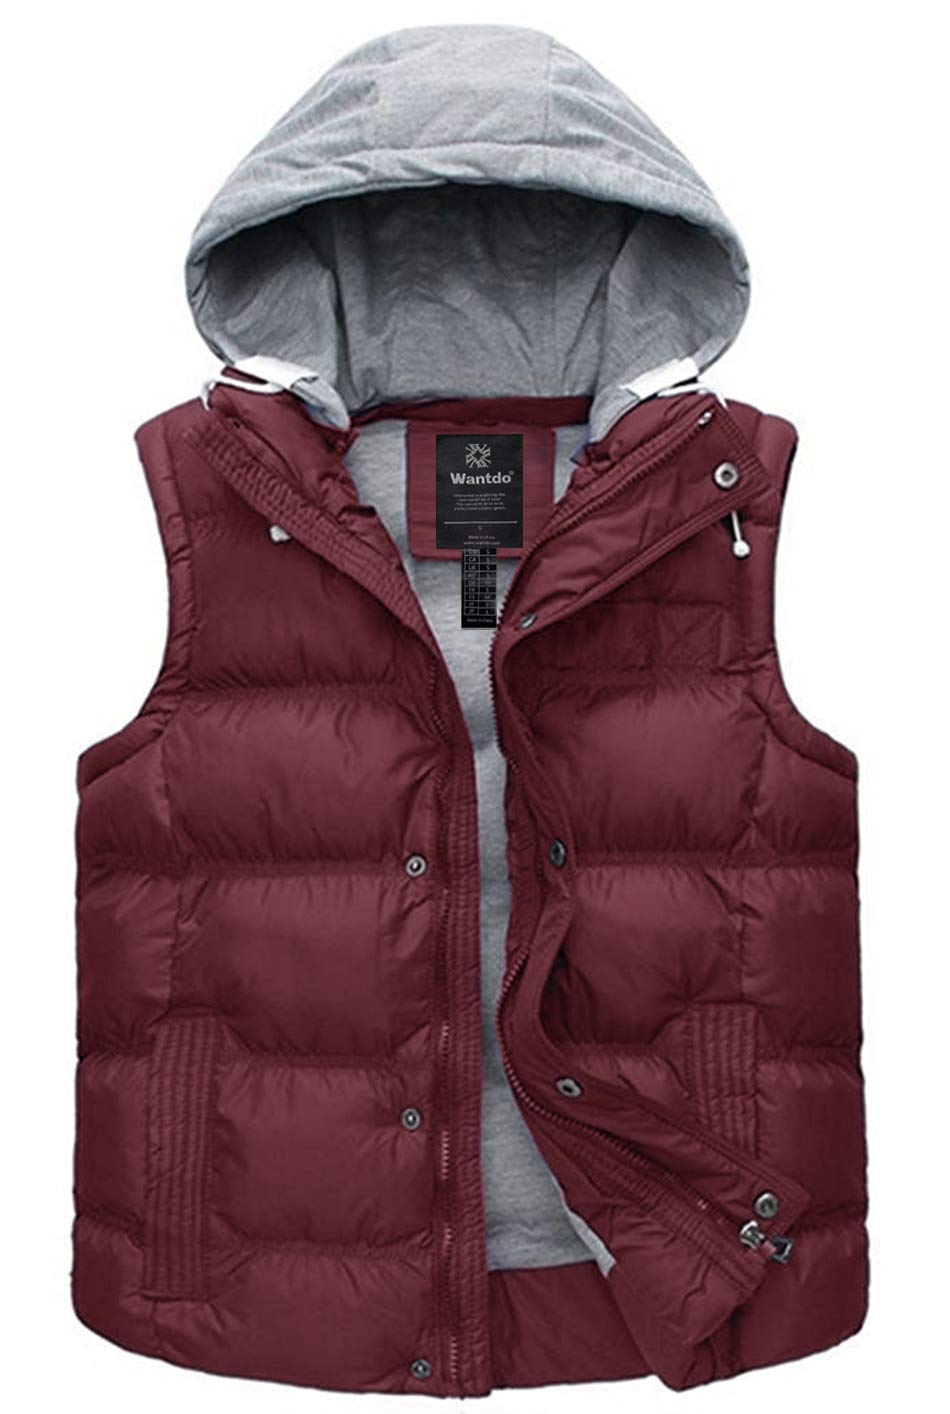 Wantdo Women's Heated Puffer Vest Thick Warm Winter Coat with Hood Wine Red L by Wantdo